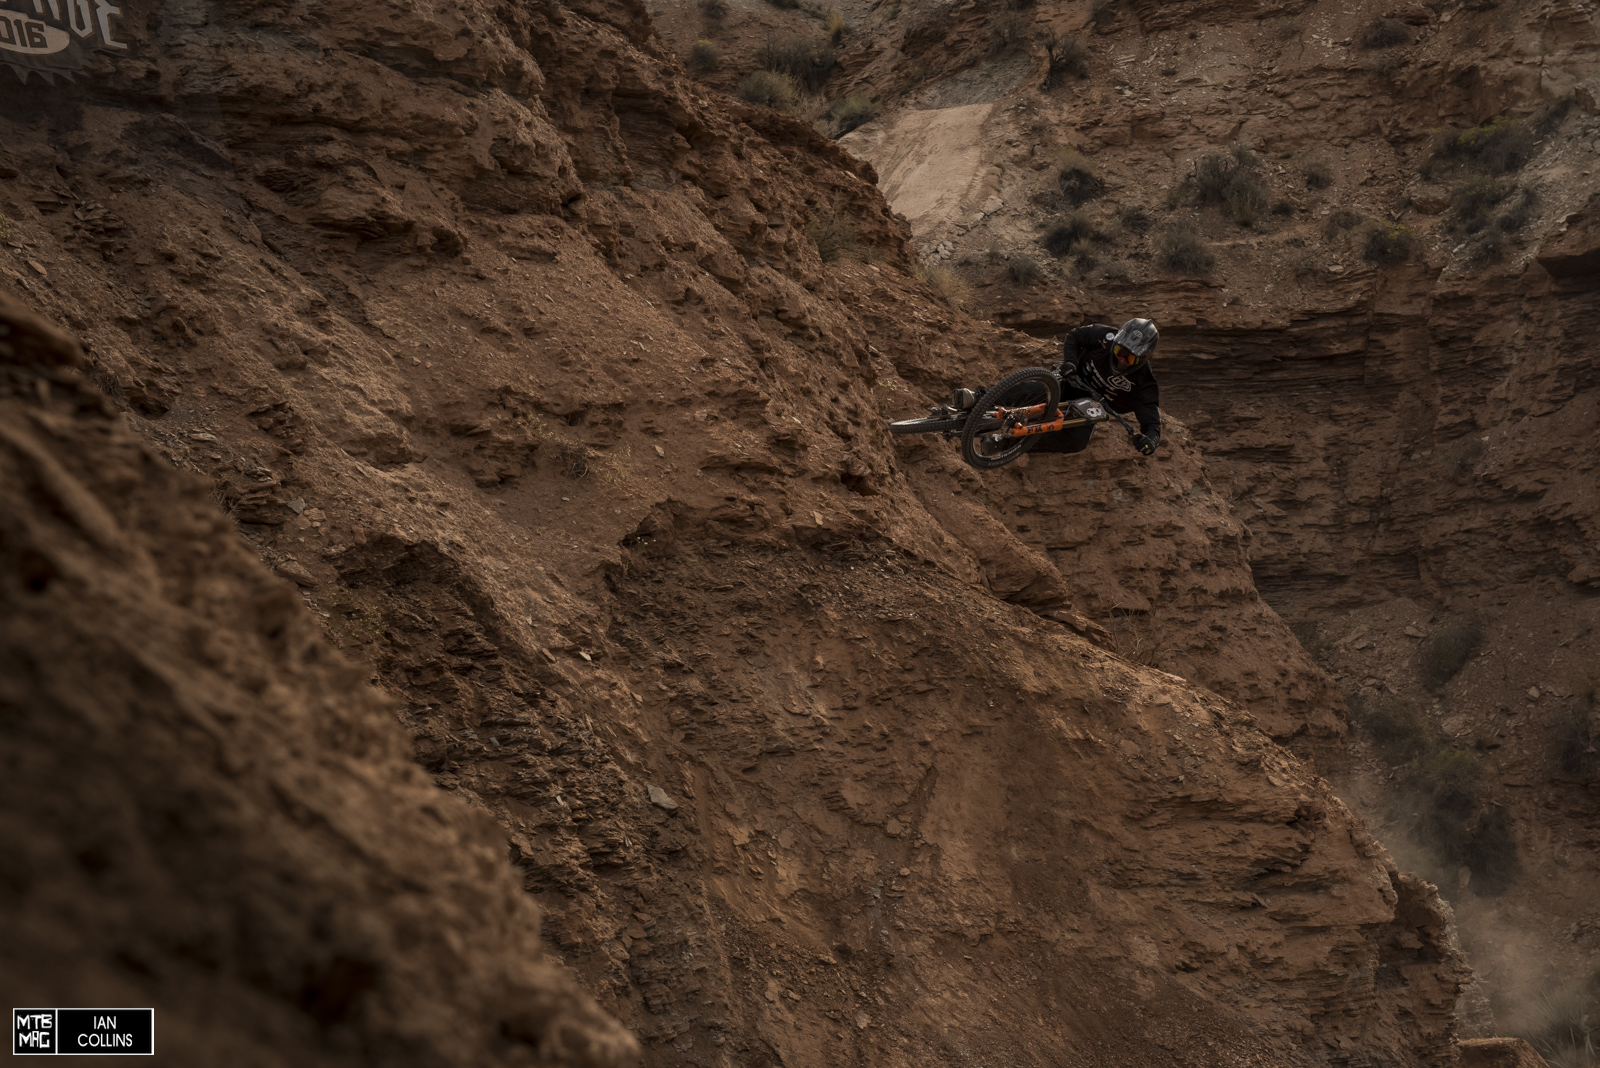 Tom Vansteenbergen's upper section was gnarly.